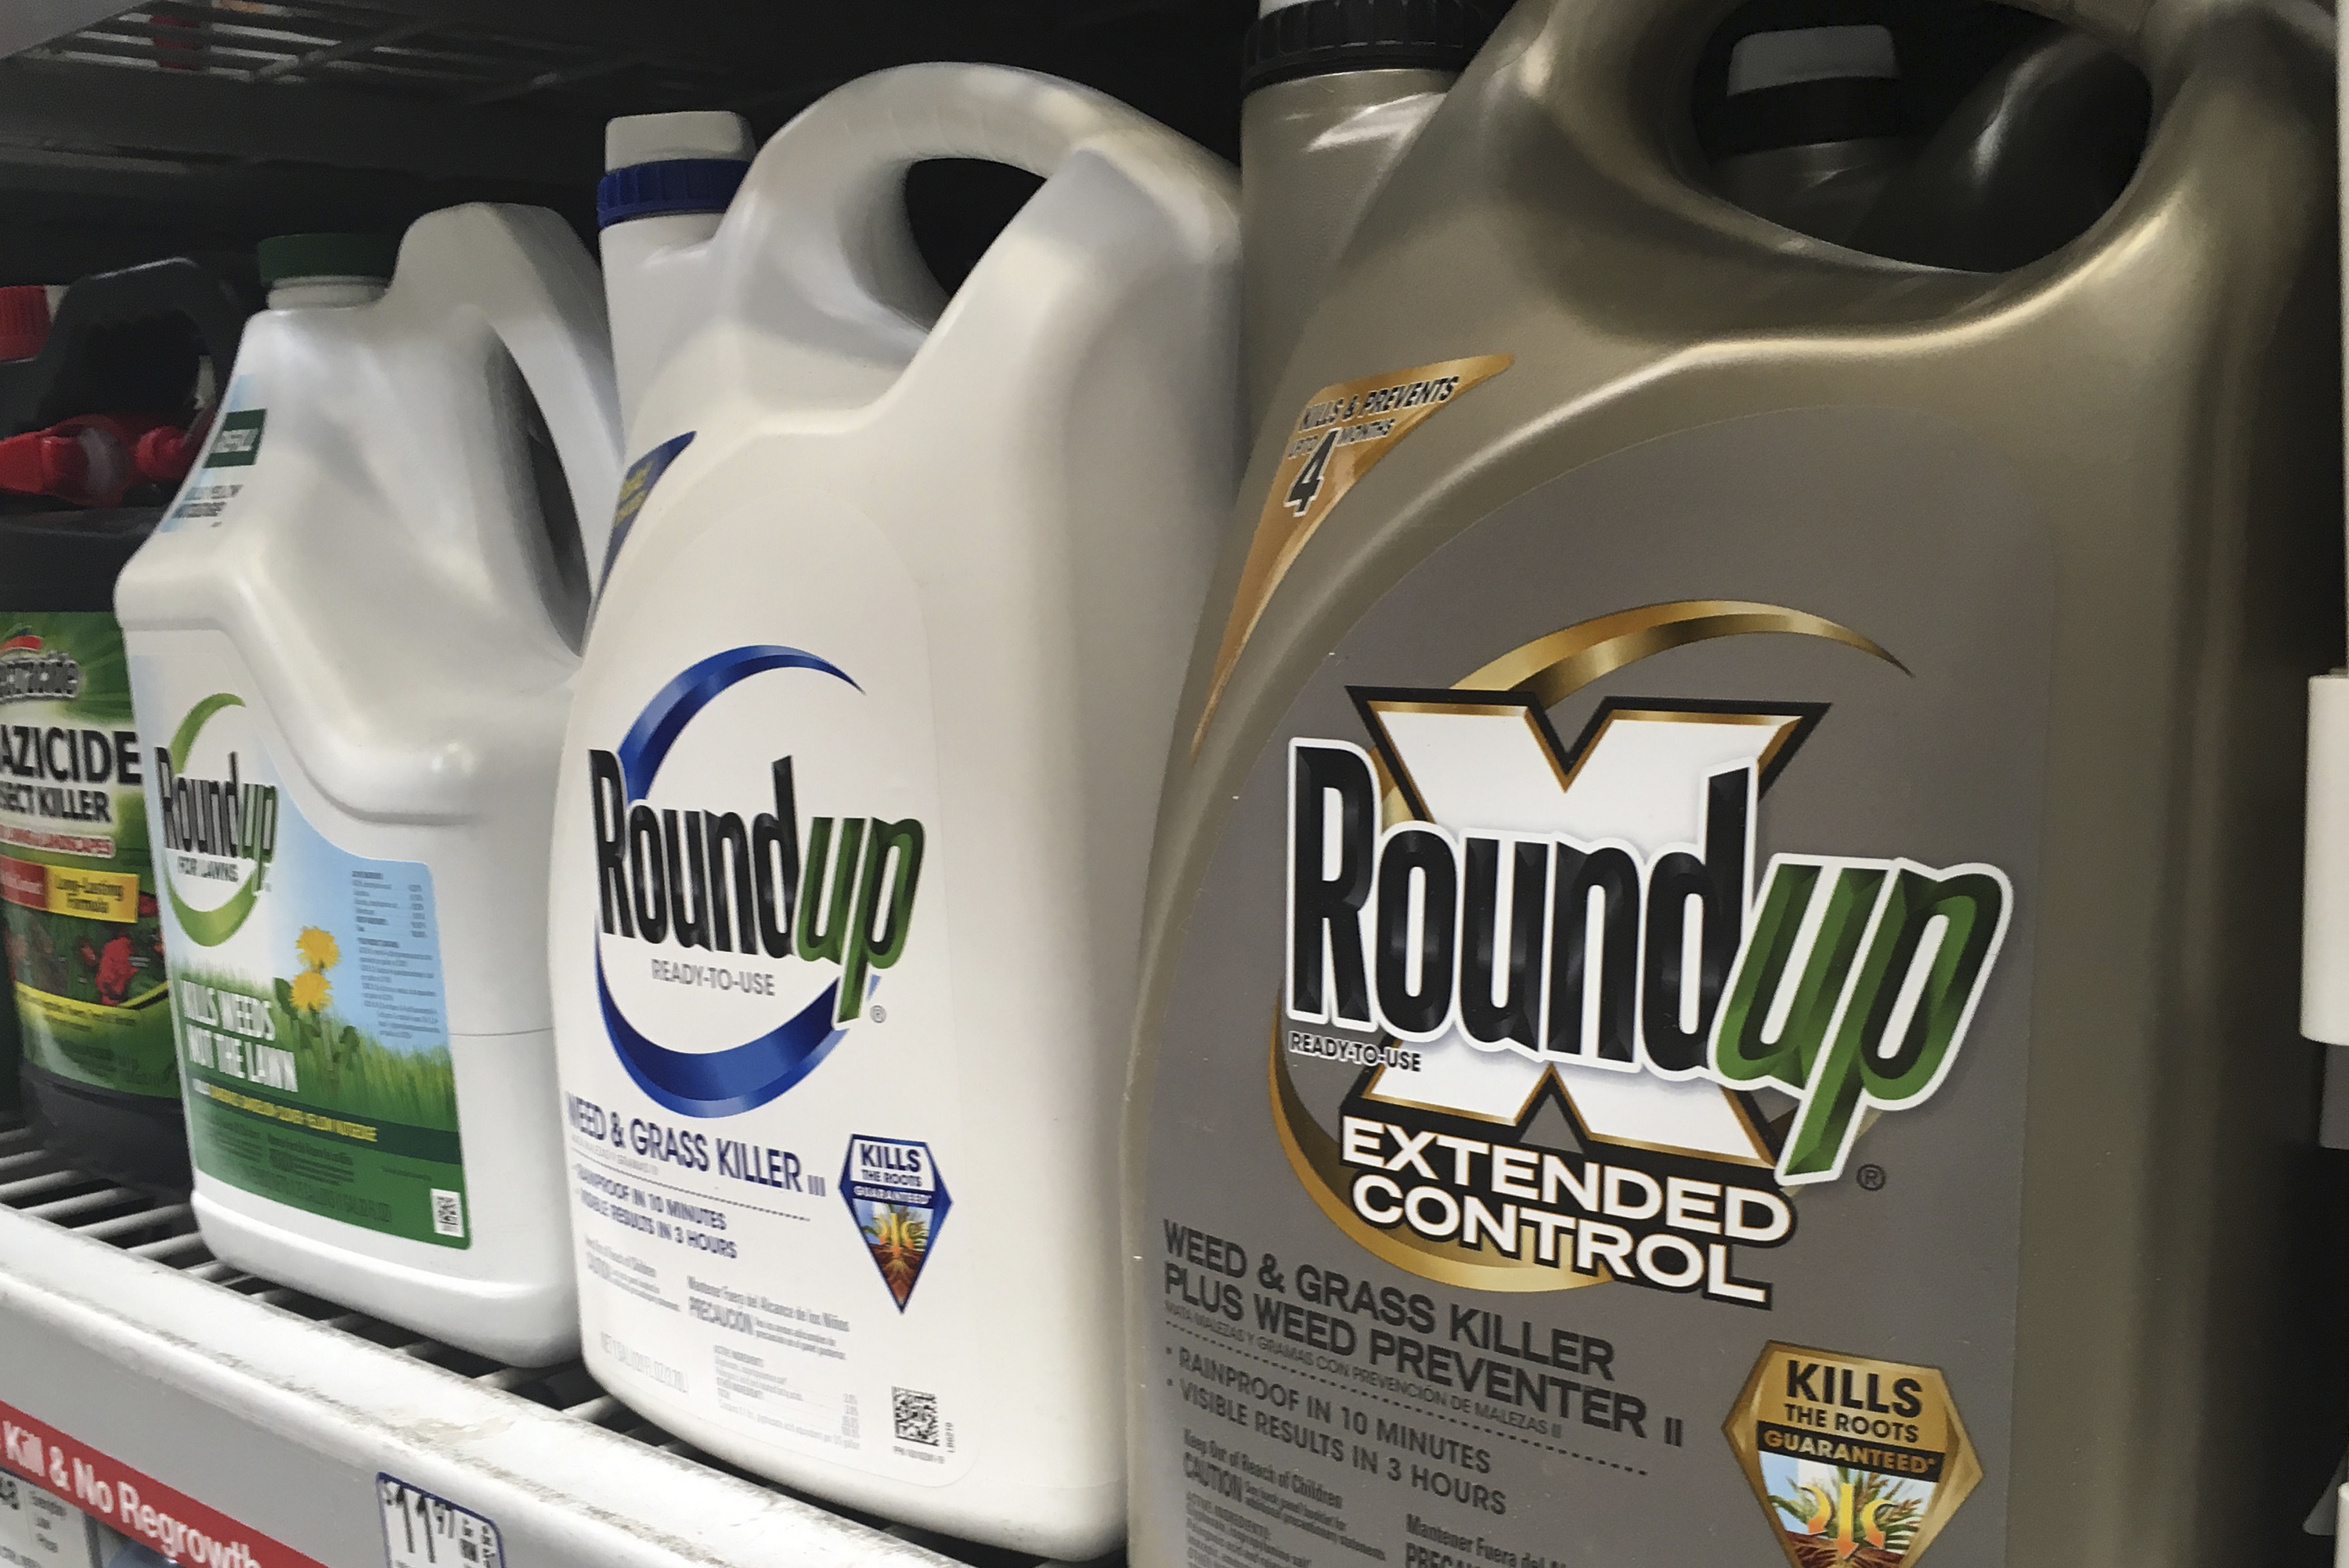 Court upholds $25-million Roundup verdict against Monsanto